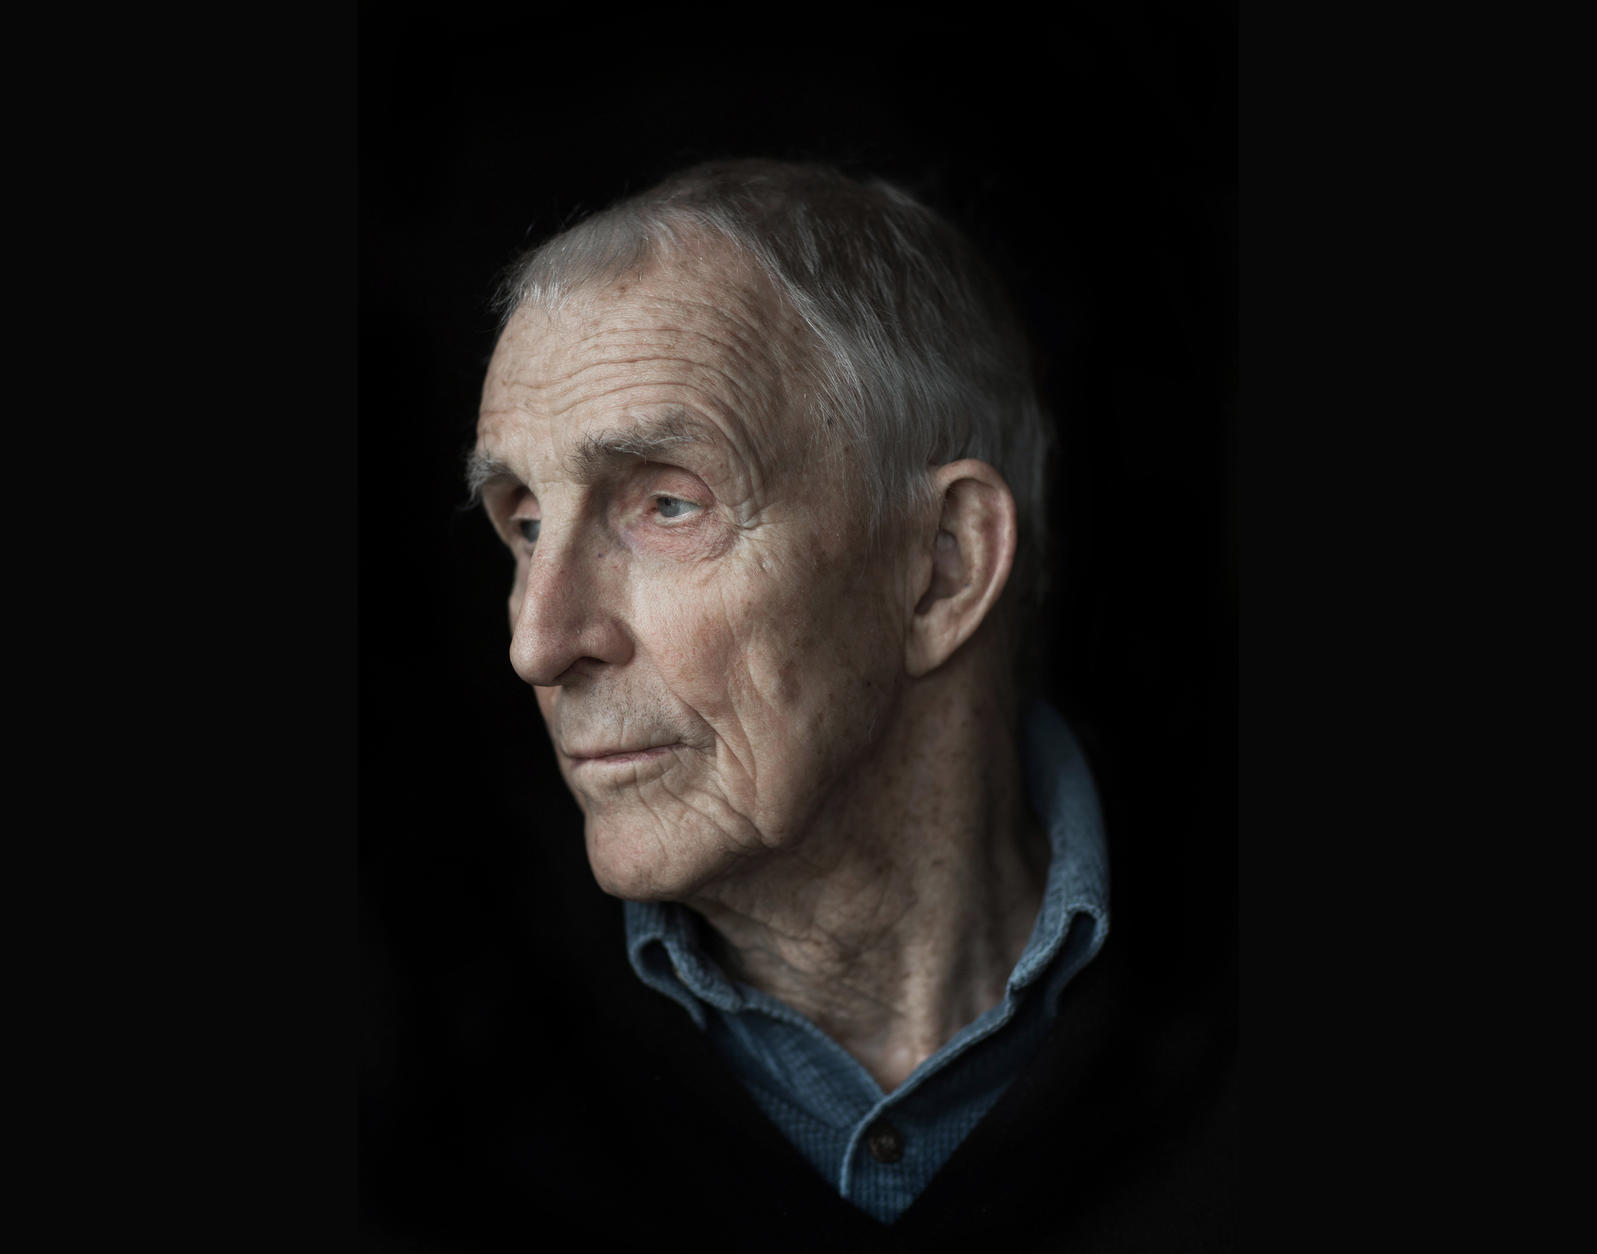 Author Peter Matthiessen at his home in Sagaponack, NY.  Photograph by Damon Winter/New York Times/Redux